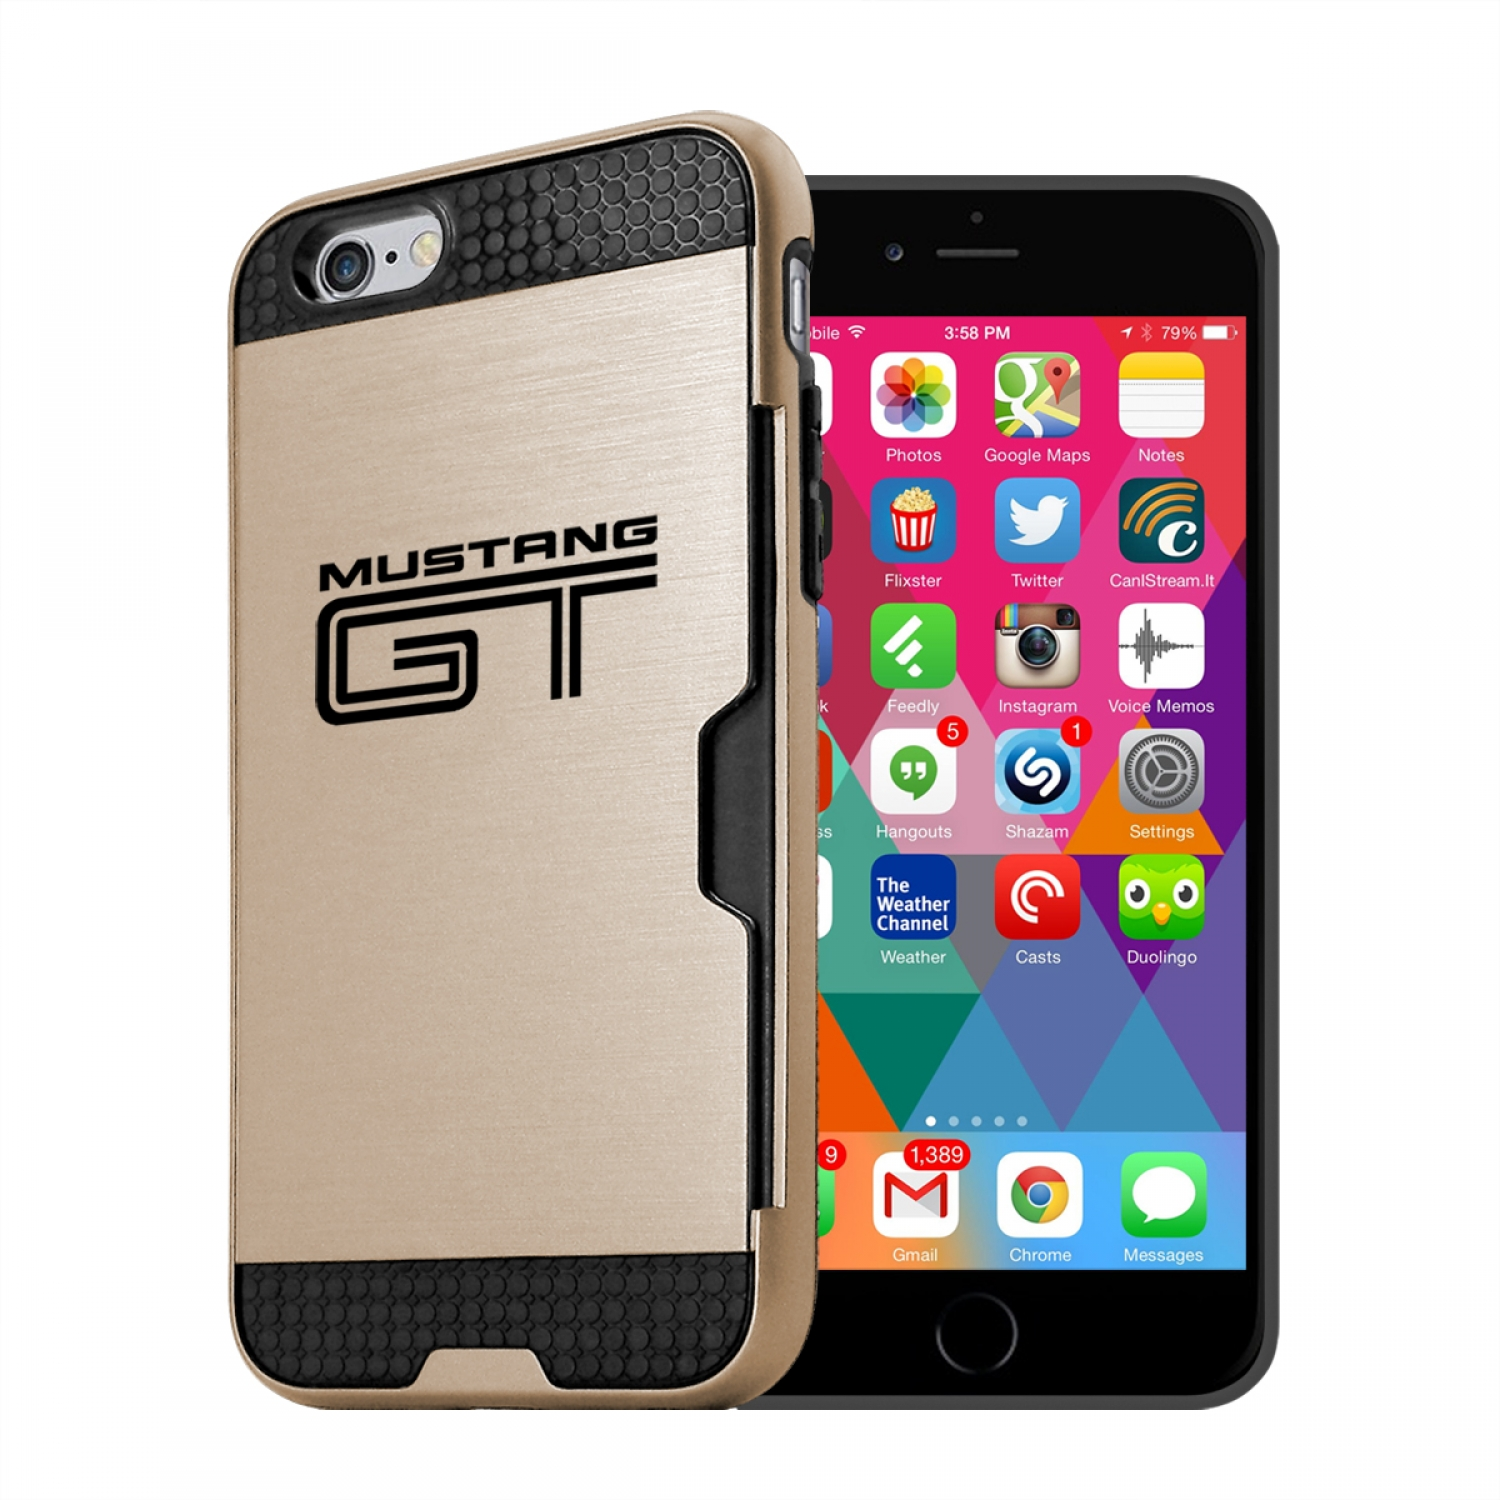 Ford Mustang GT iPhone 6 6s Ultra Thin TPU Golden Phone Case with Credit Card Slot Wallet